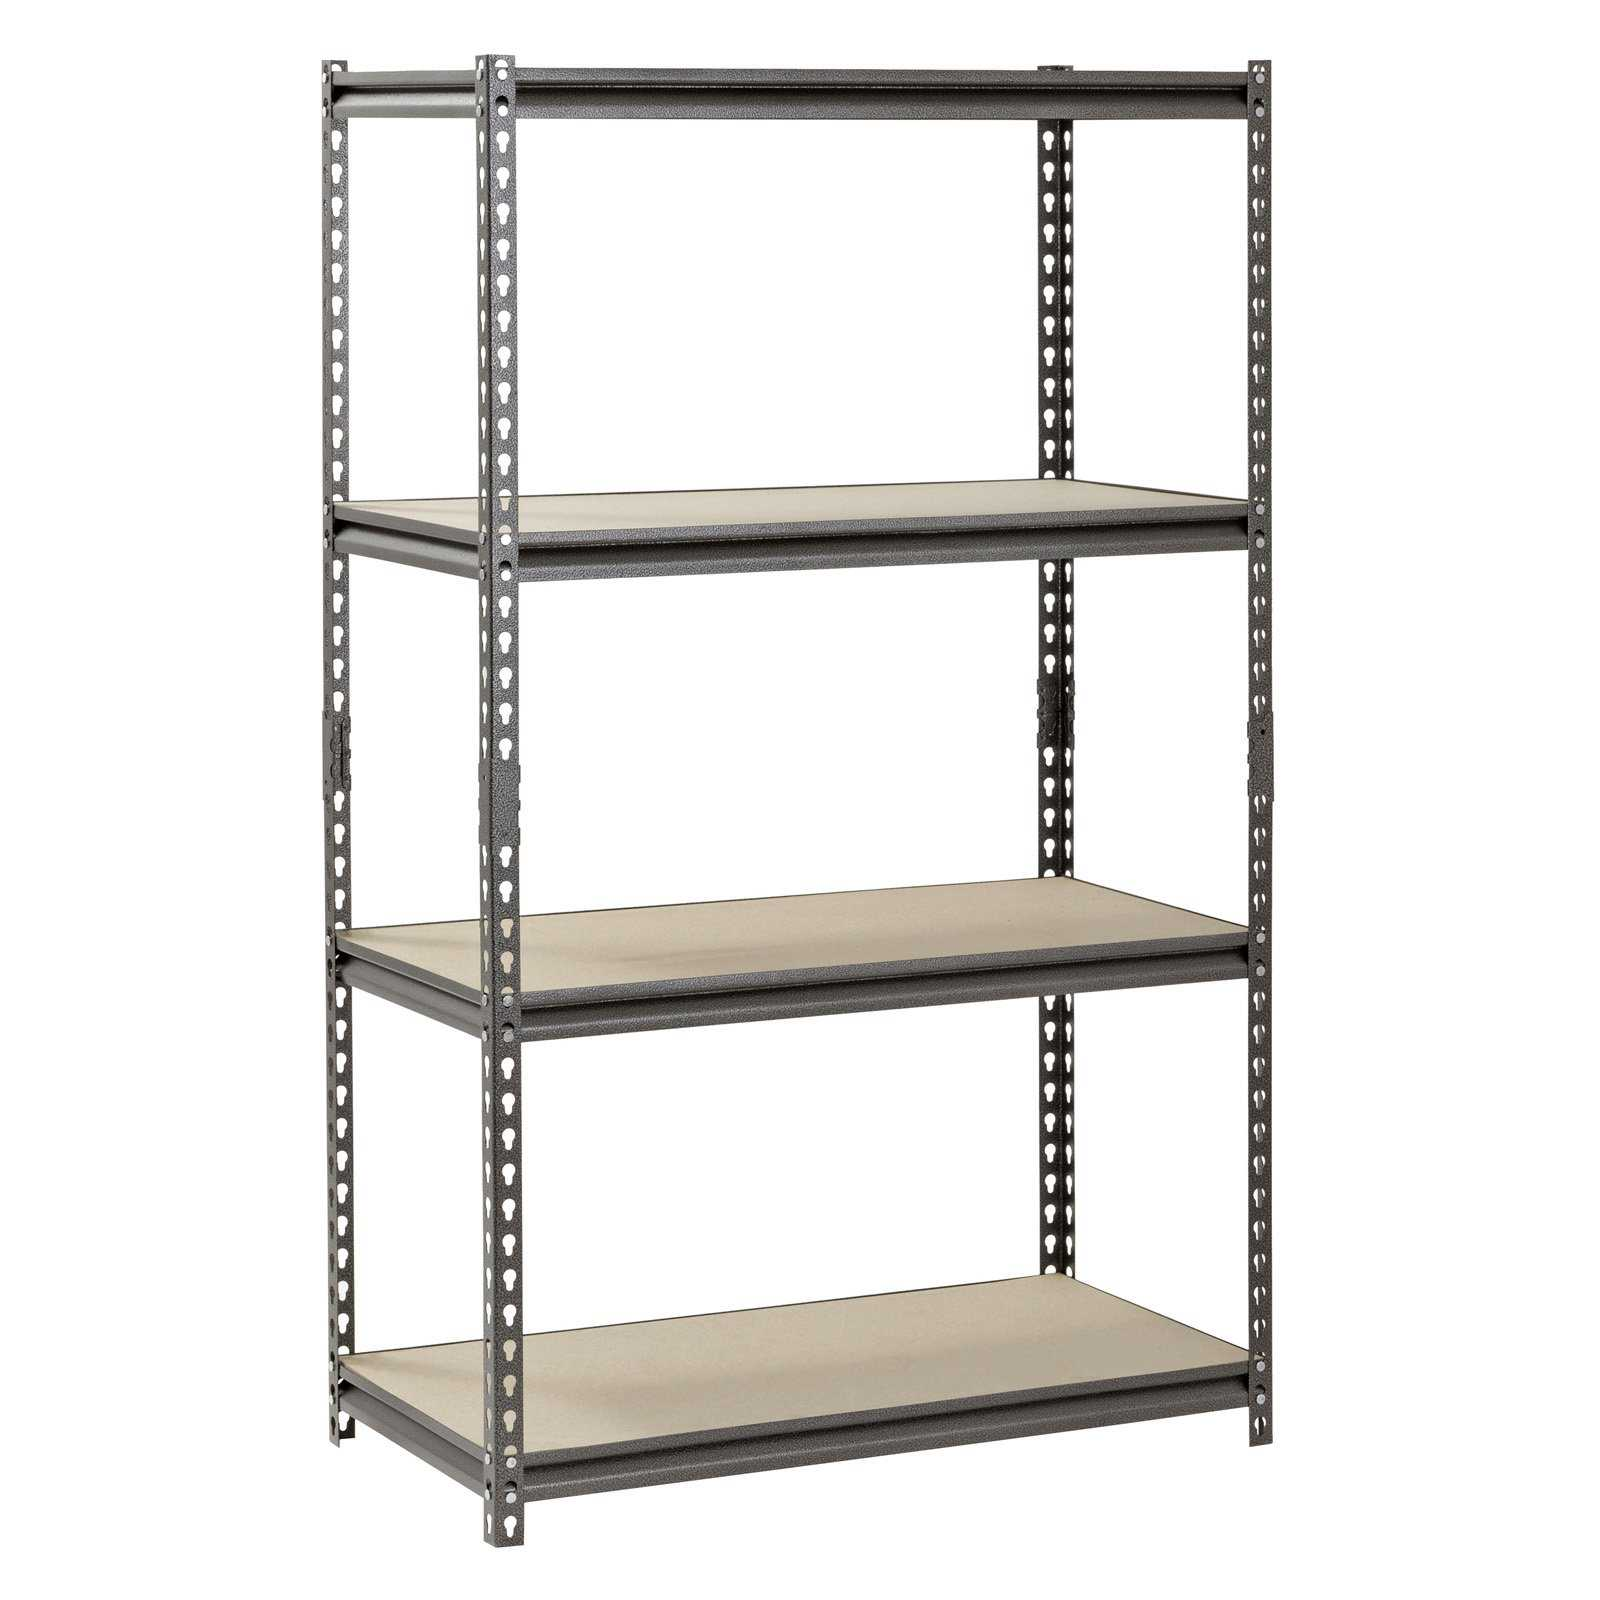 Muscle Rack 4-Shelf Steel Shelving, Silver-Vein, 18' D x 36' W x 60' H